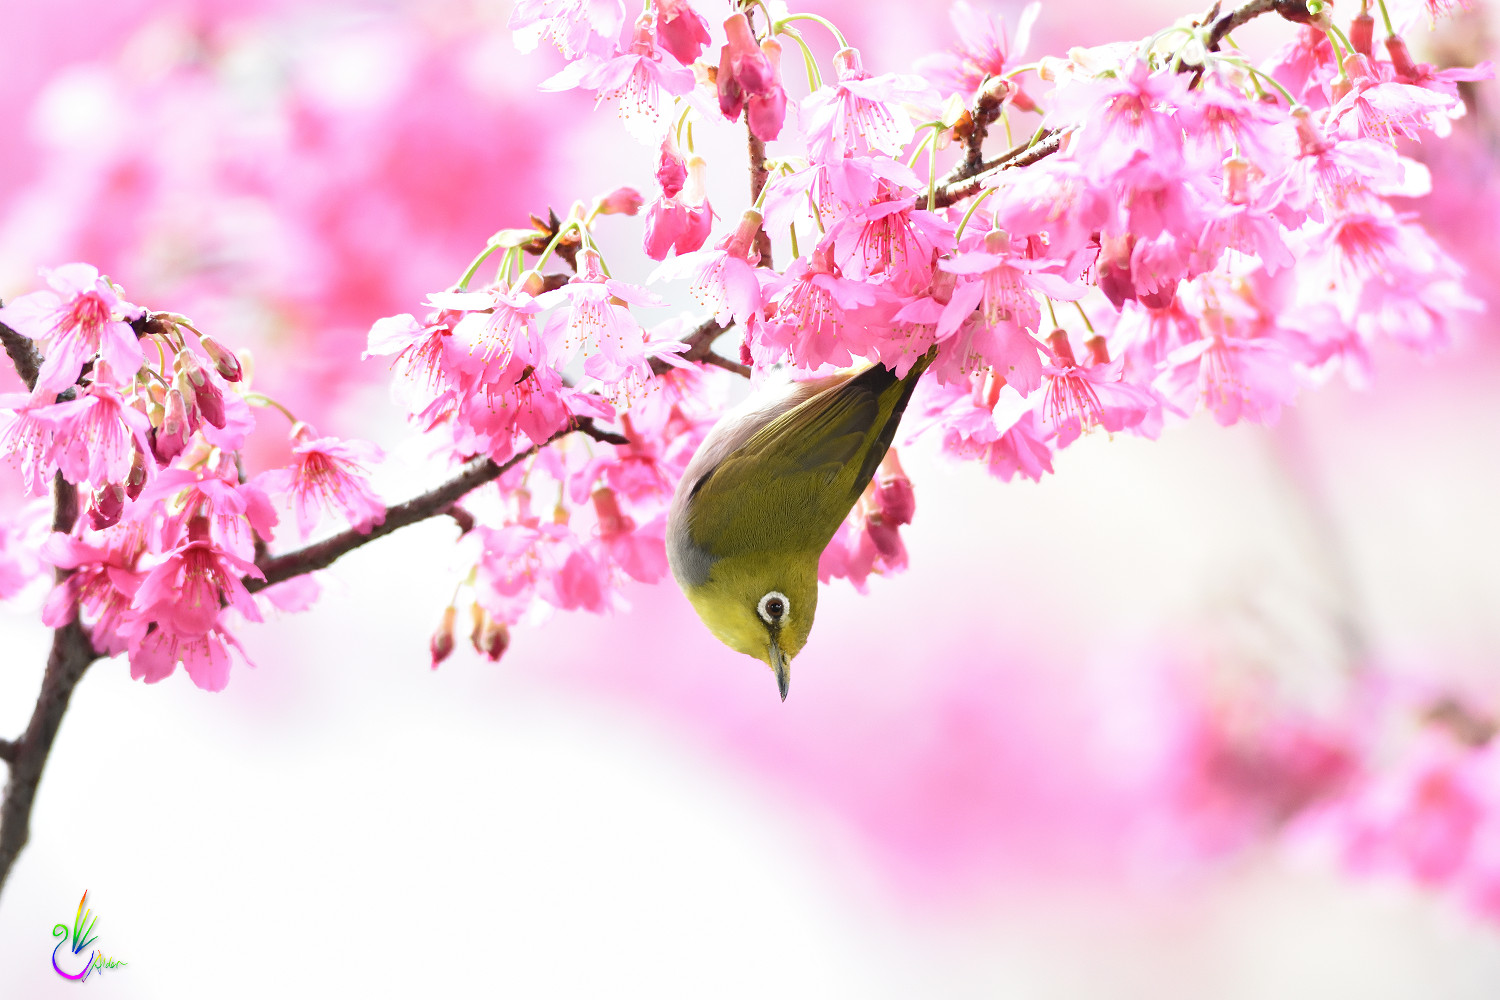 Sakura_White-eye_7937